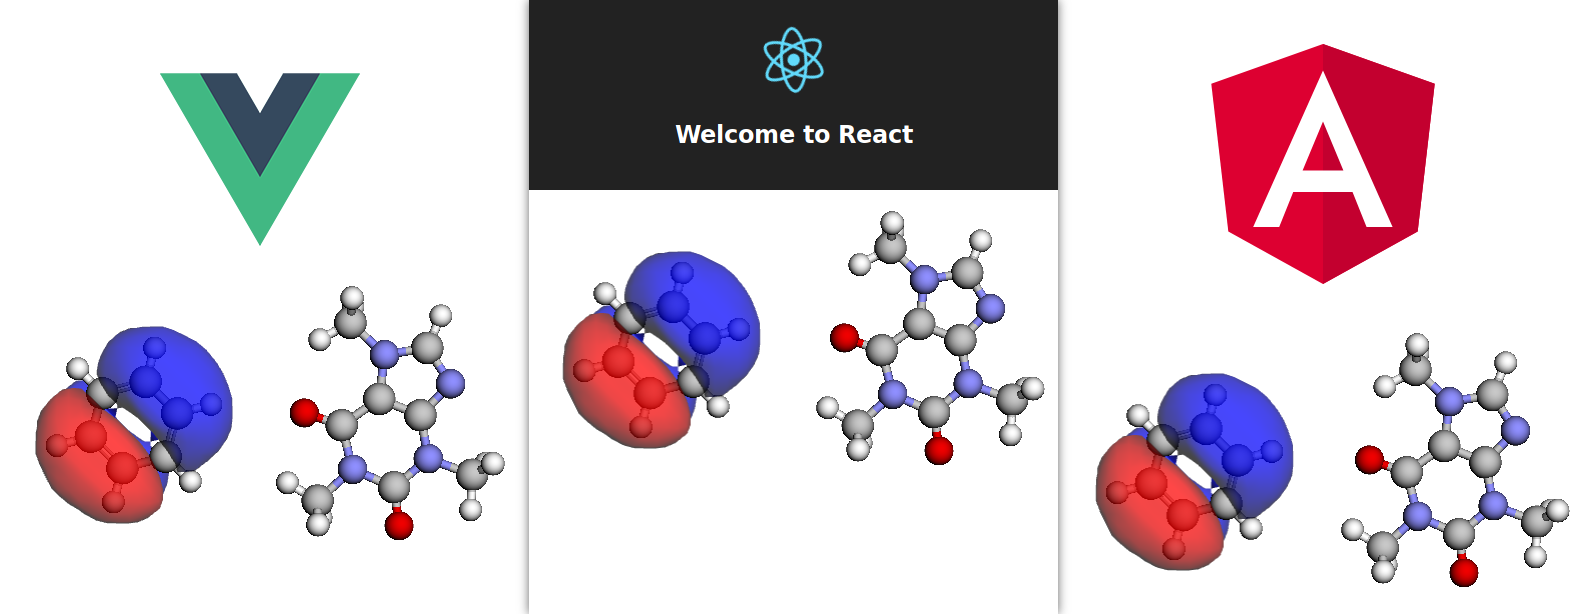 Stencil components in React, Vue, and Angular - Alessandro Genova